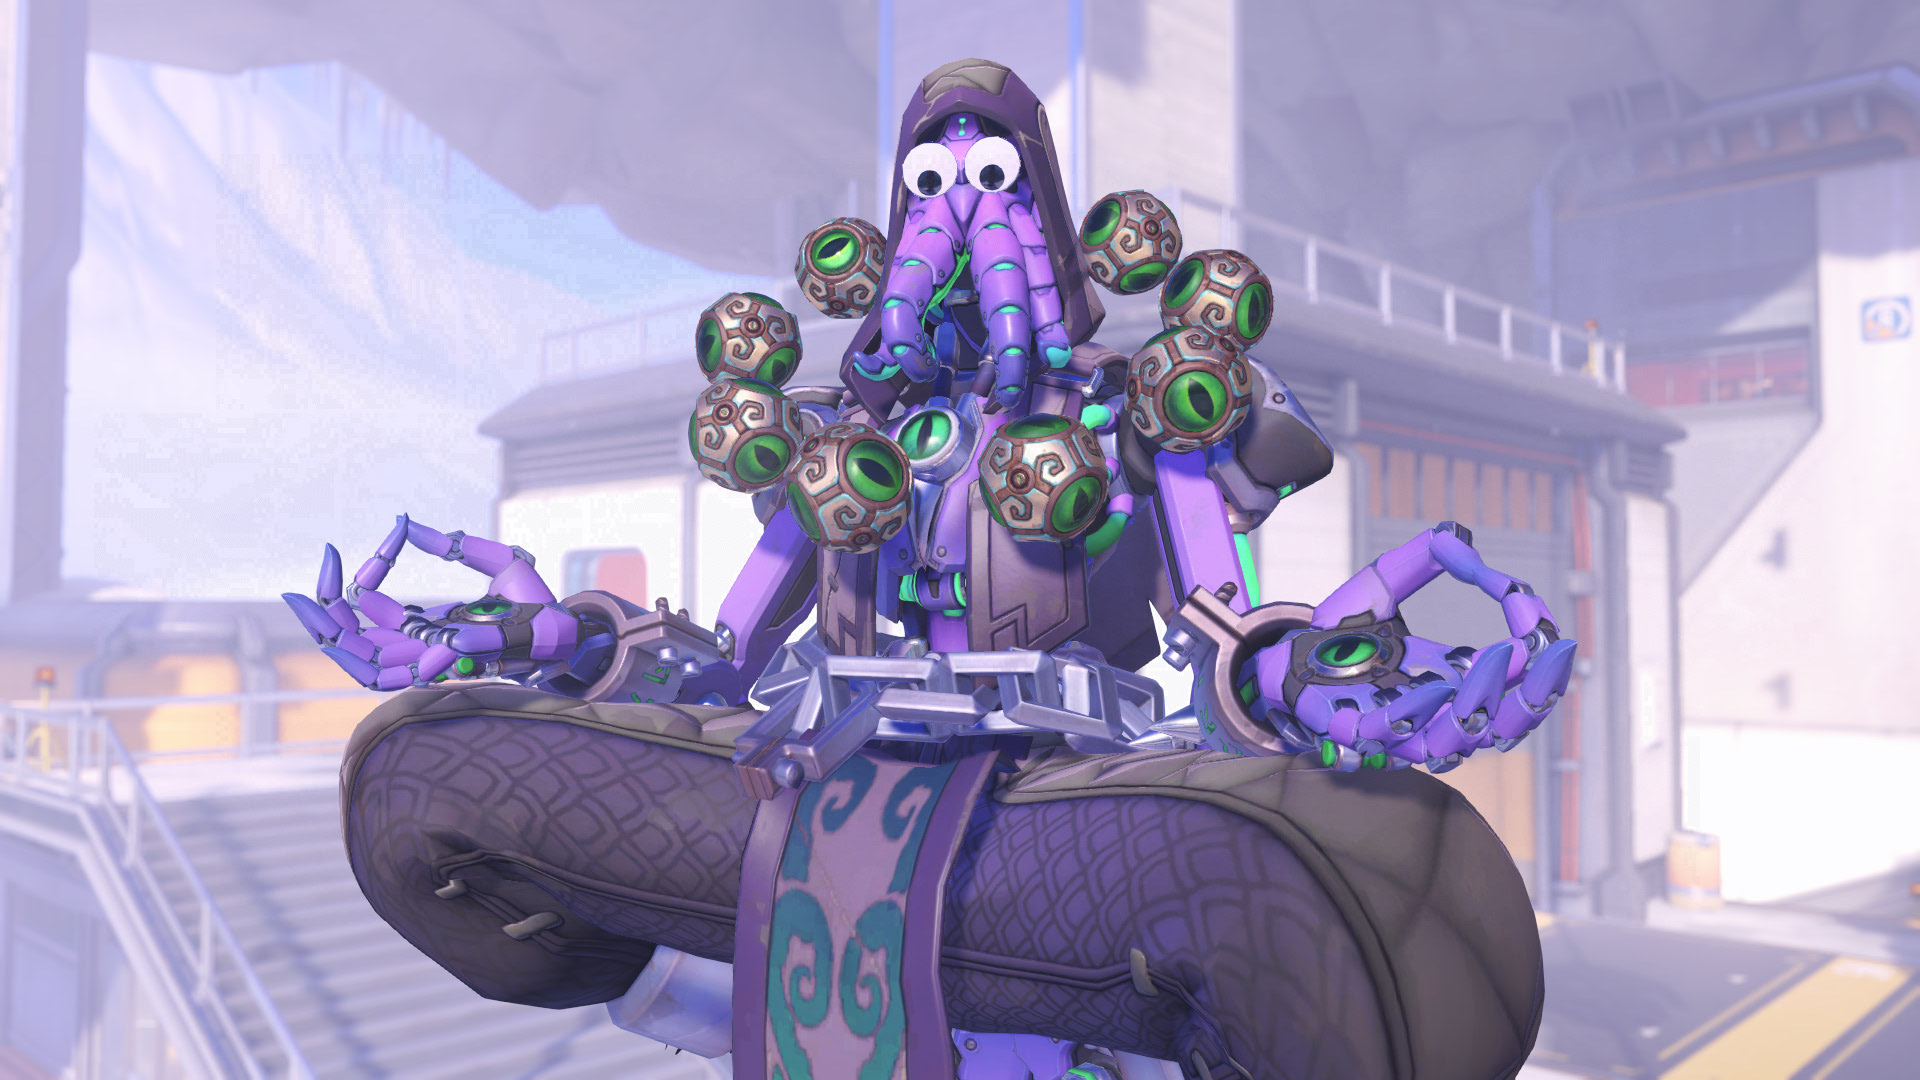 Overwatch's April Fools' Prank gives everyone Googly eyes, including B.O.B.